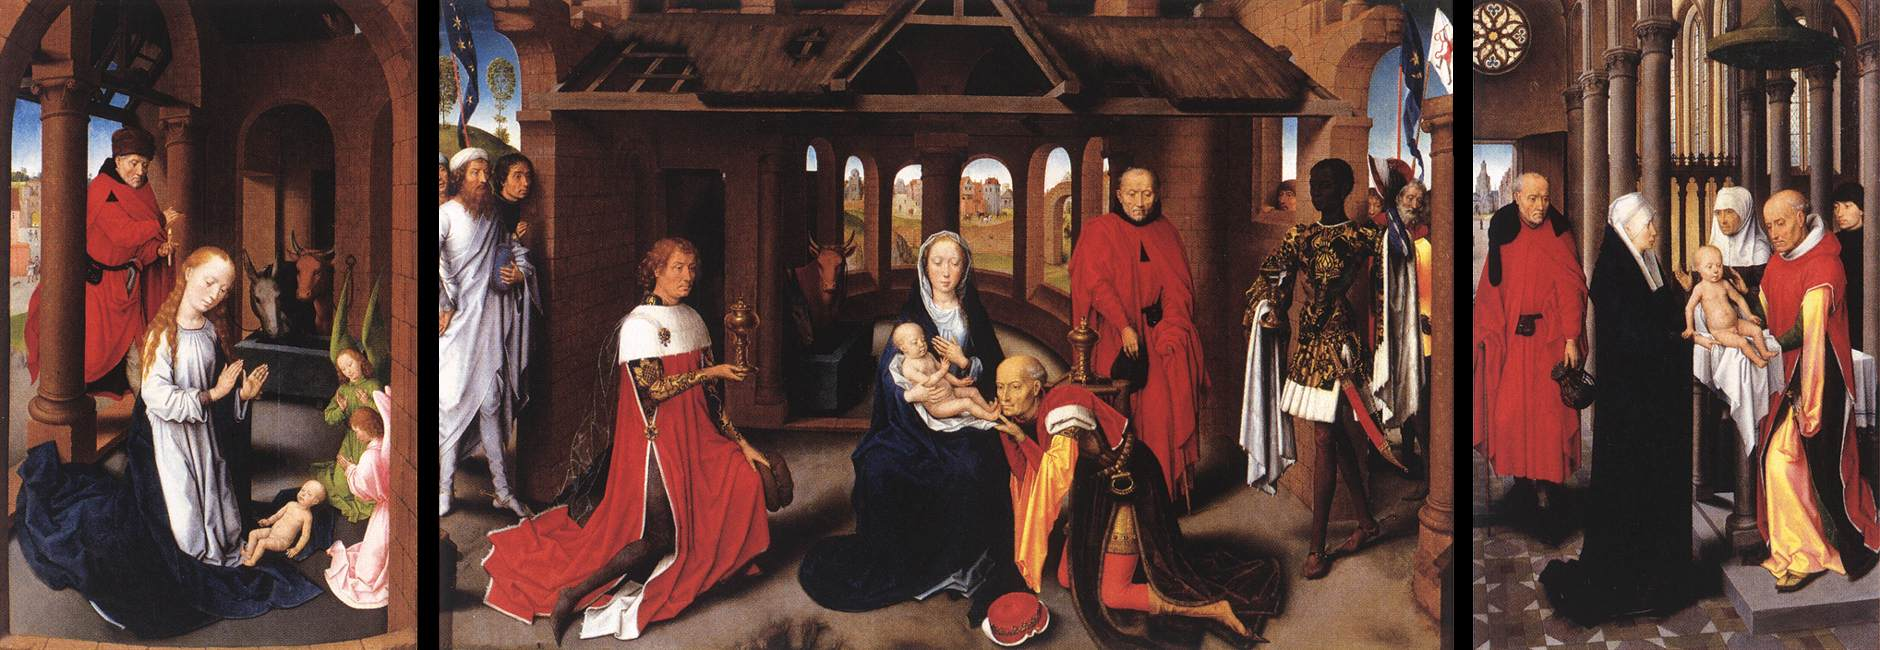 Adoration of the Magi: Whole Triptych